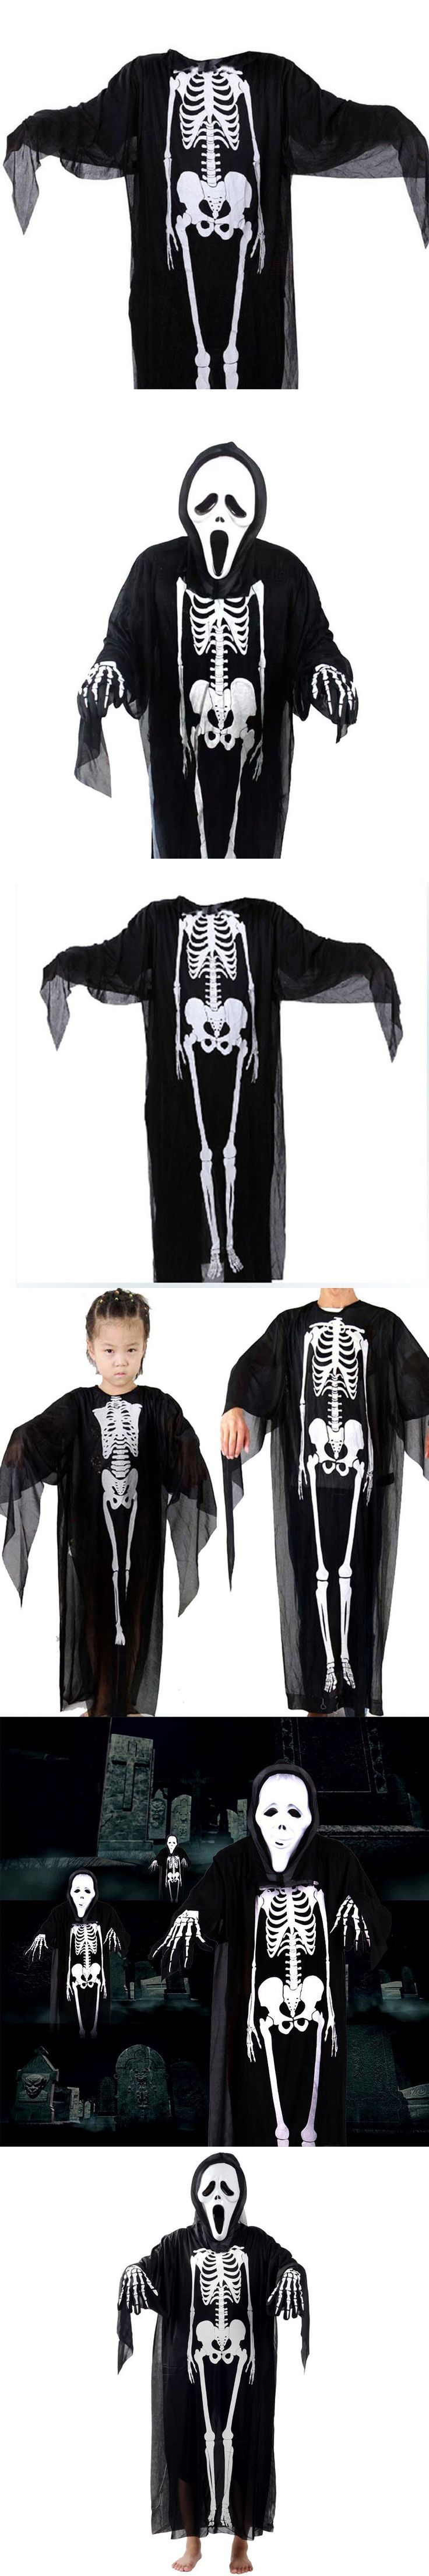 Skull Skeleton Ghost Cosplay Costume Children Adults Halloween Carnival Masquerade Fancy Dress Party Performance Wear Clothing